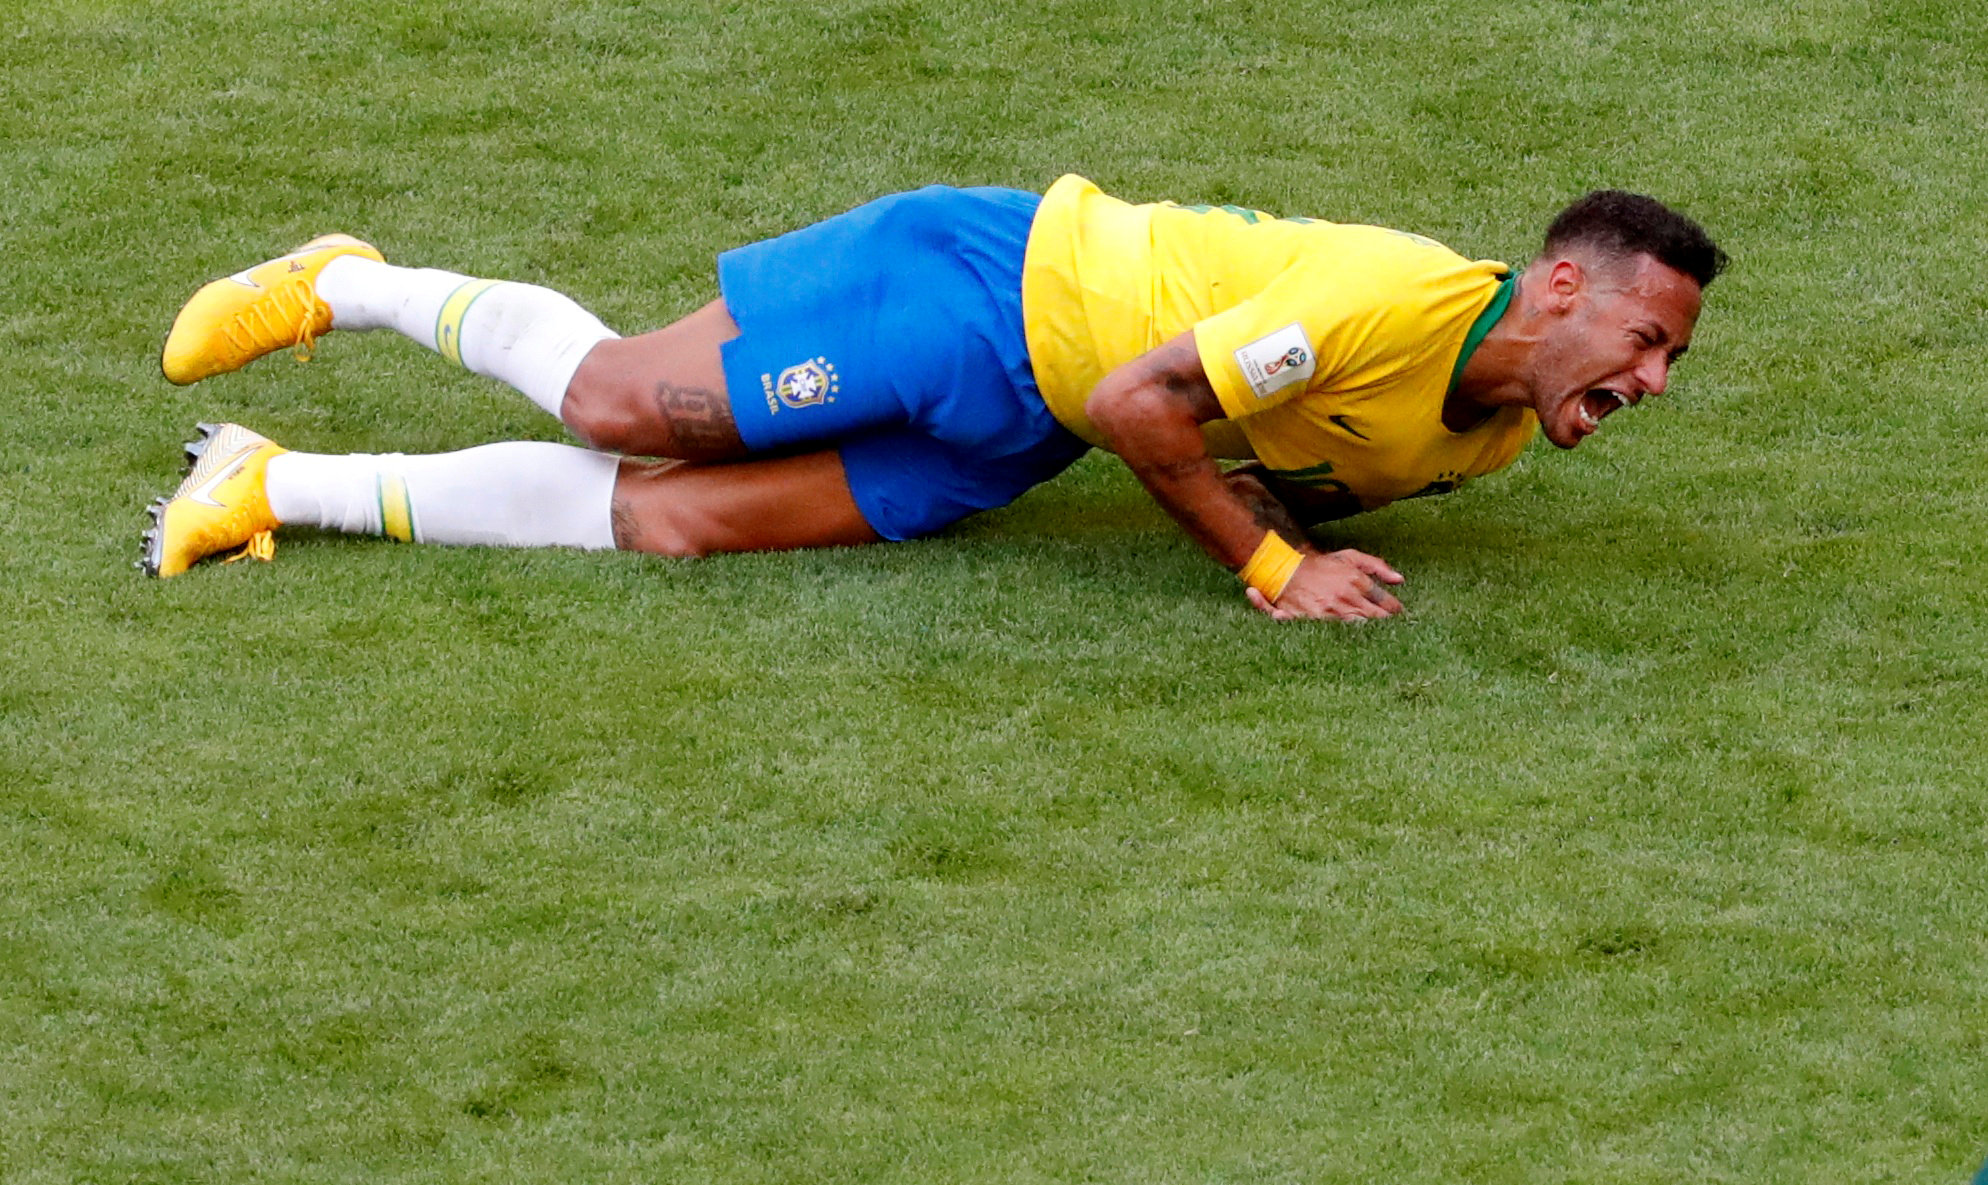 Soccer Football - World Cup - Round of 16 - Brazil vs Mexico - Samara Arena, Samara, Russia - July 2, 2018  Brazil's Neymar lies on the pitch after sustaining an injury    REUTERS/David Gray     TPX IMAGES OF THE DAY